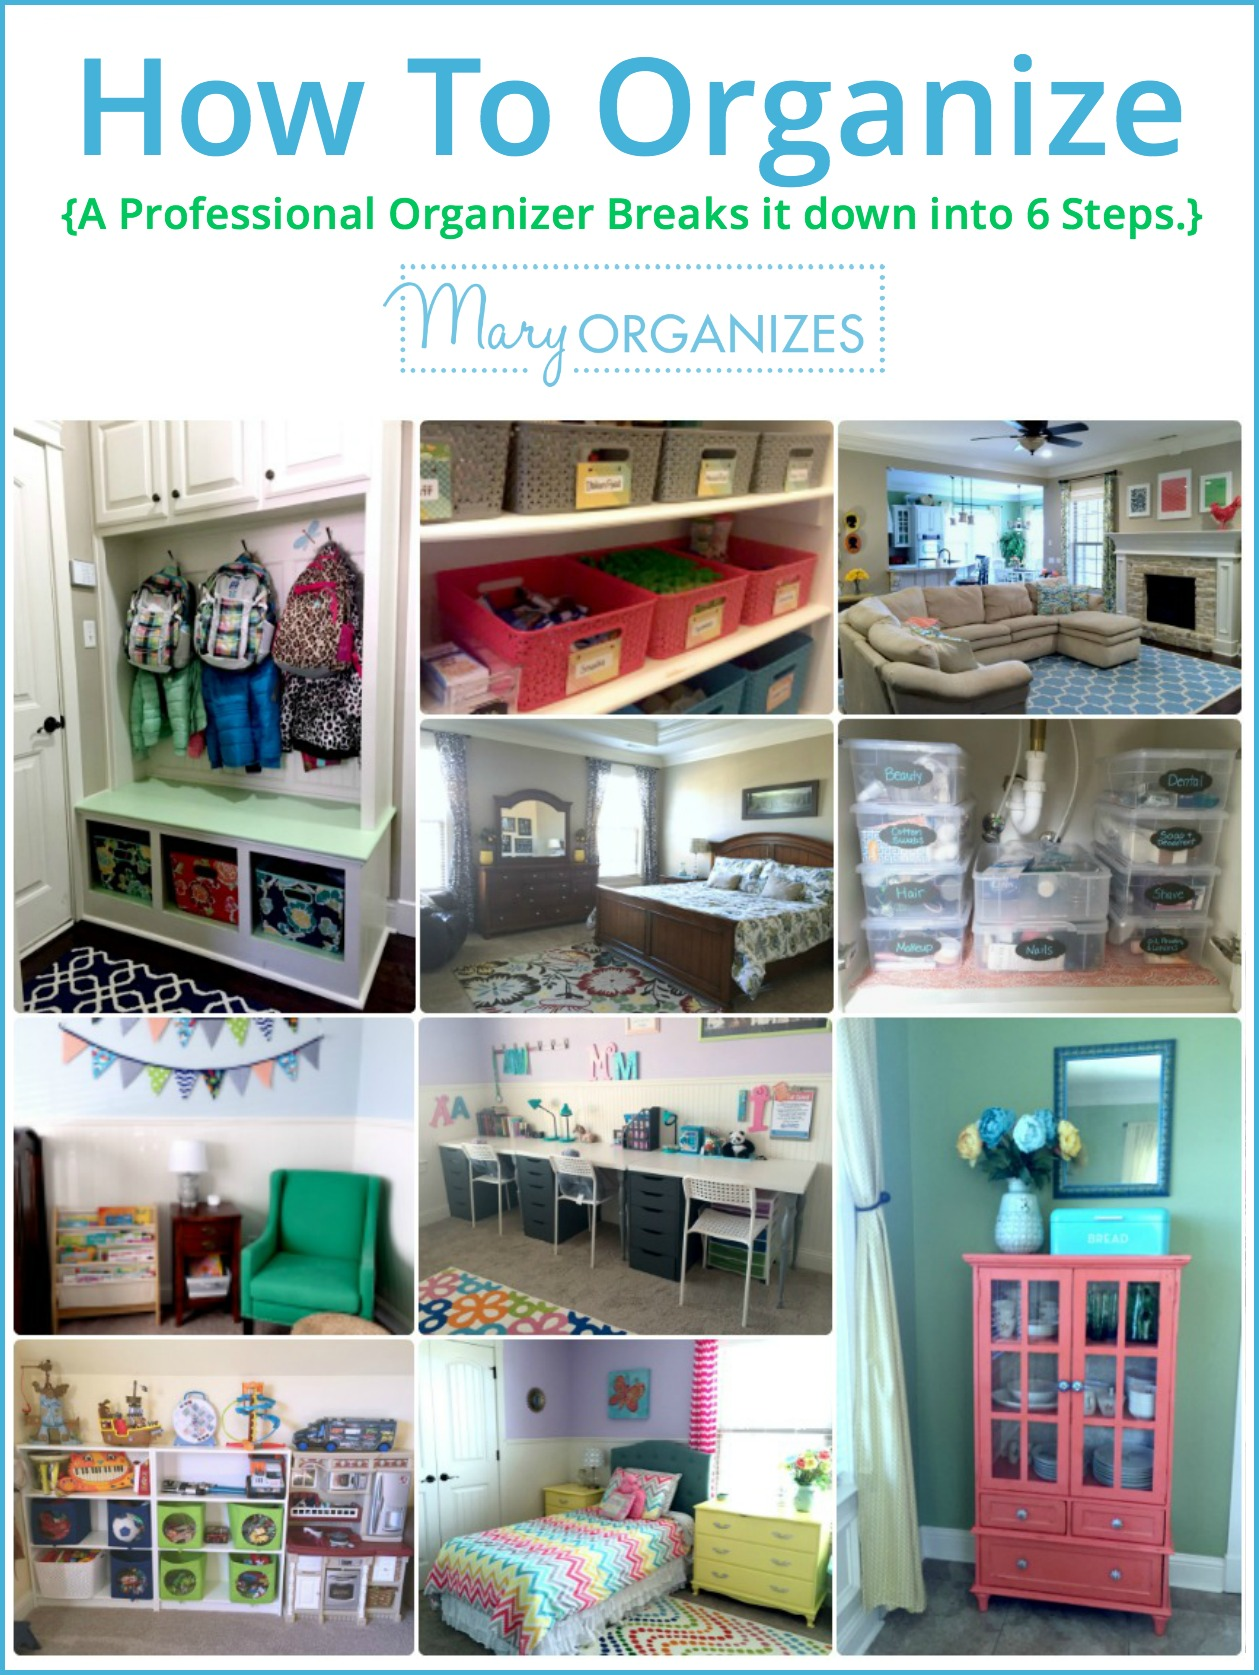 How To Organize - guide from a professional organizer -v